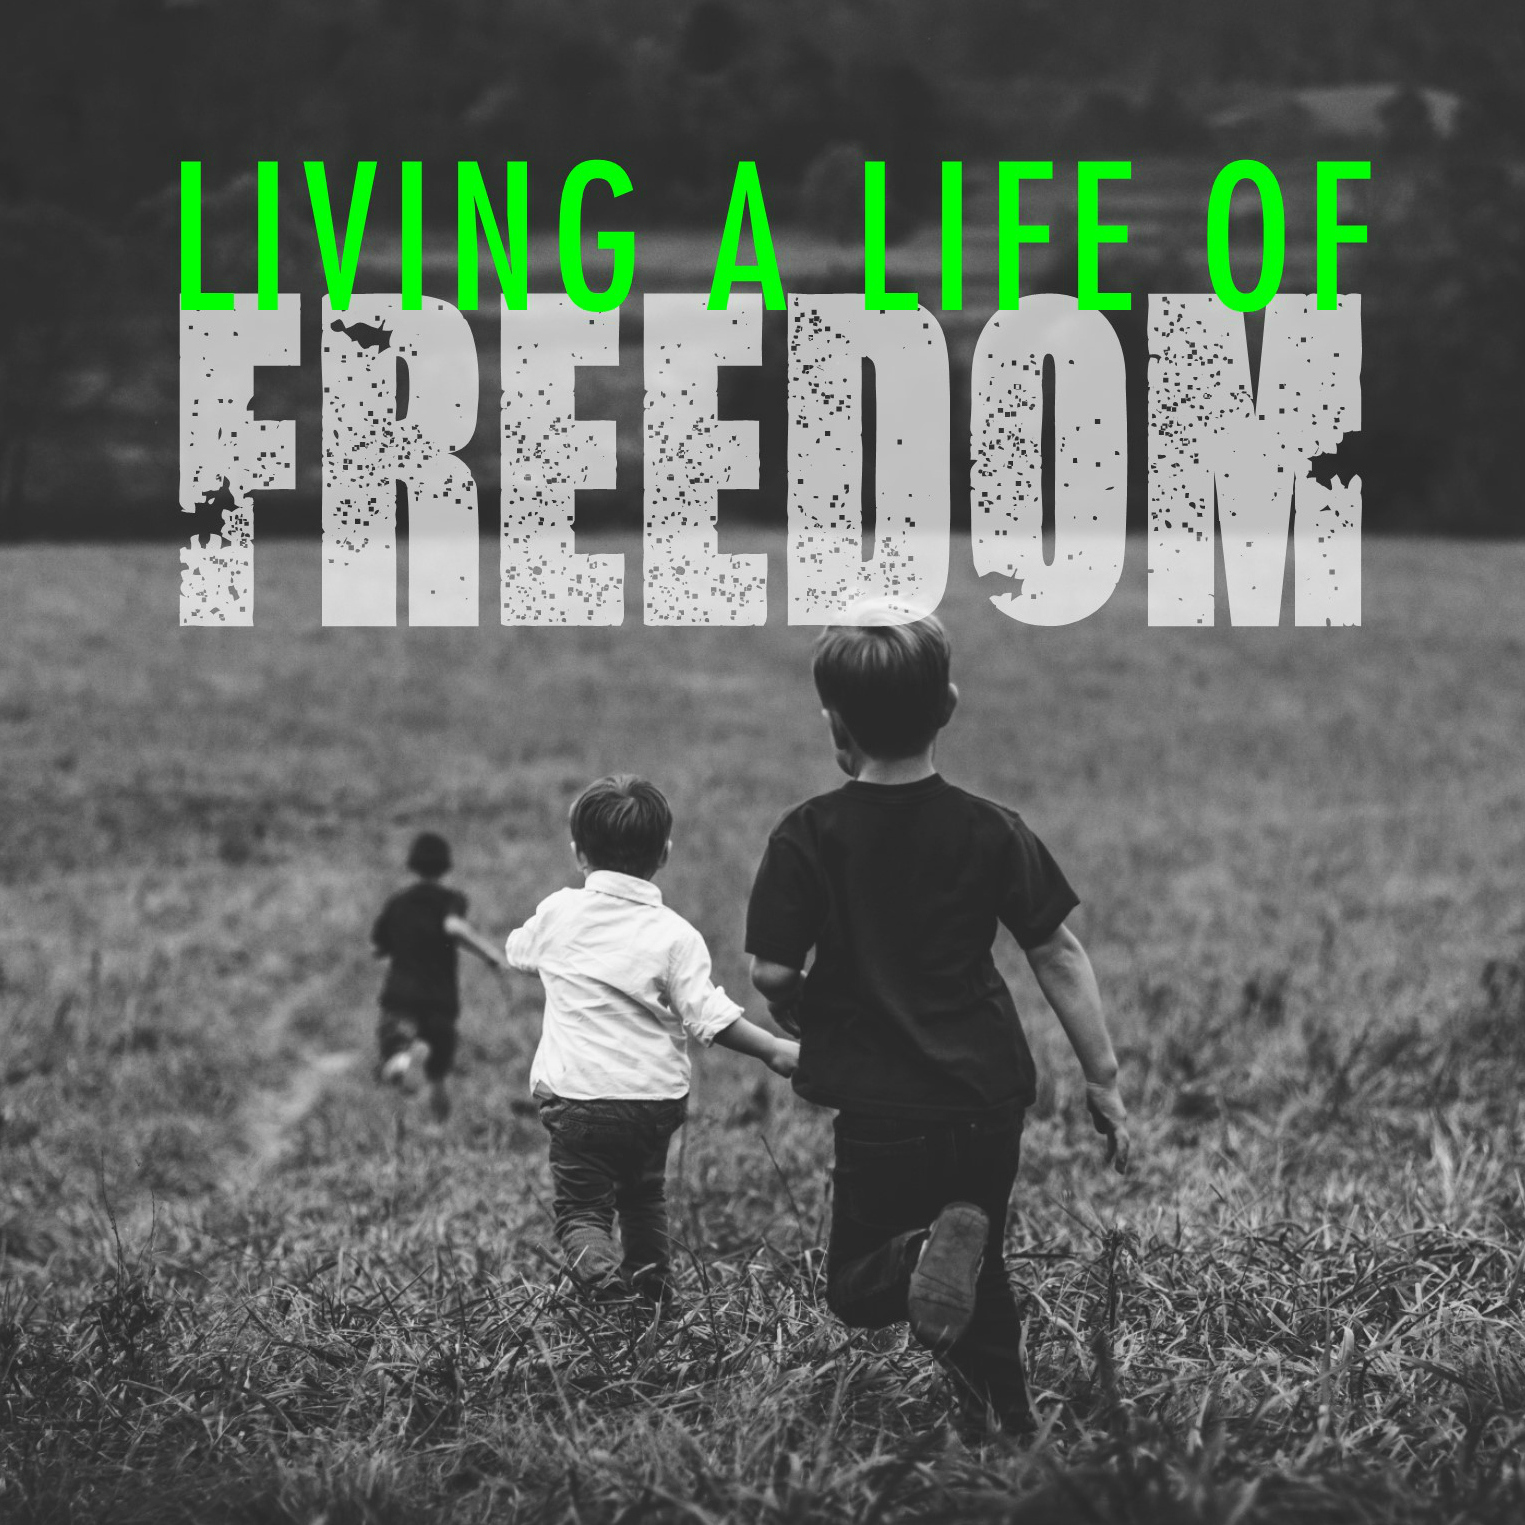 Living A Life of Freedom: Pursuing Him by Glenn Berry